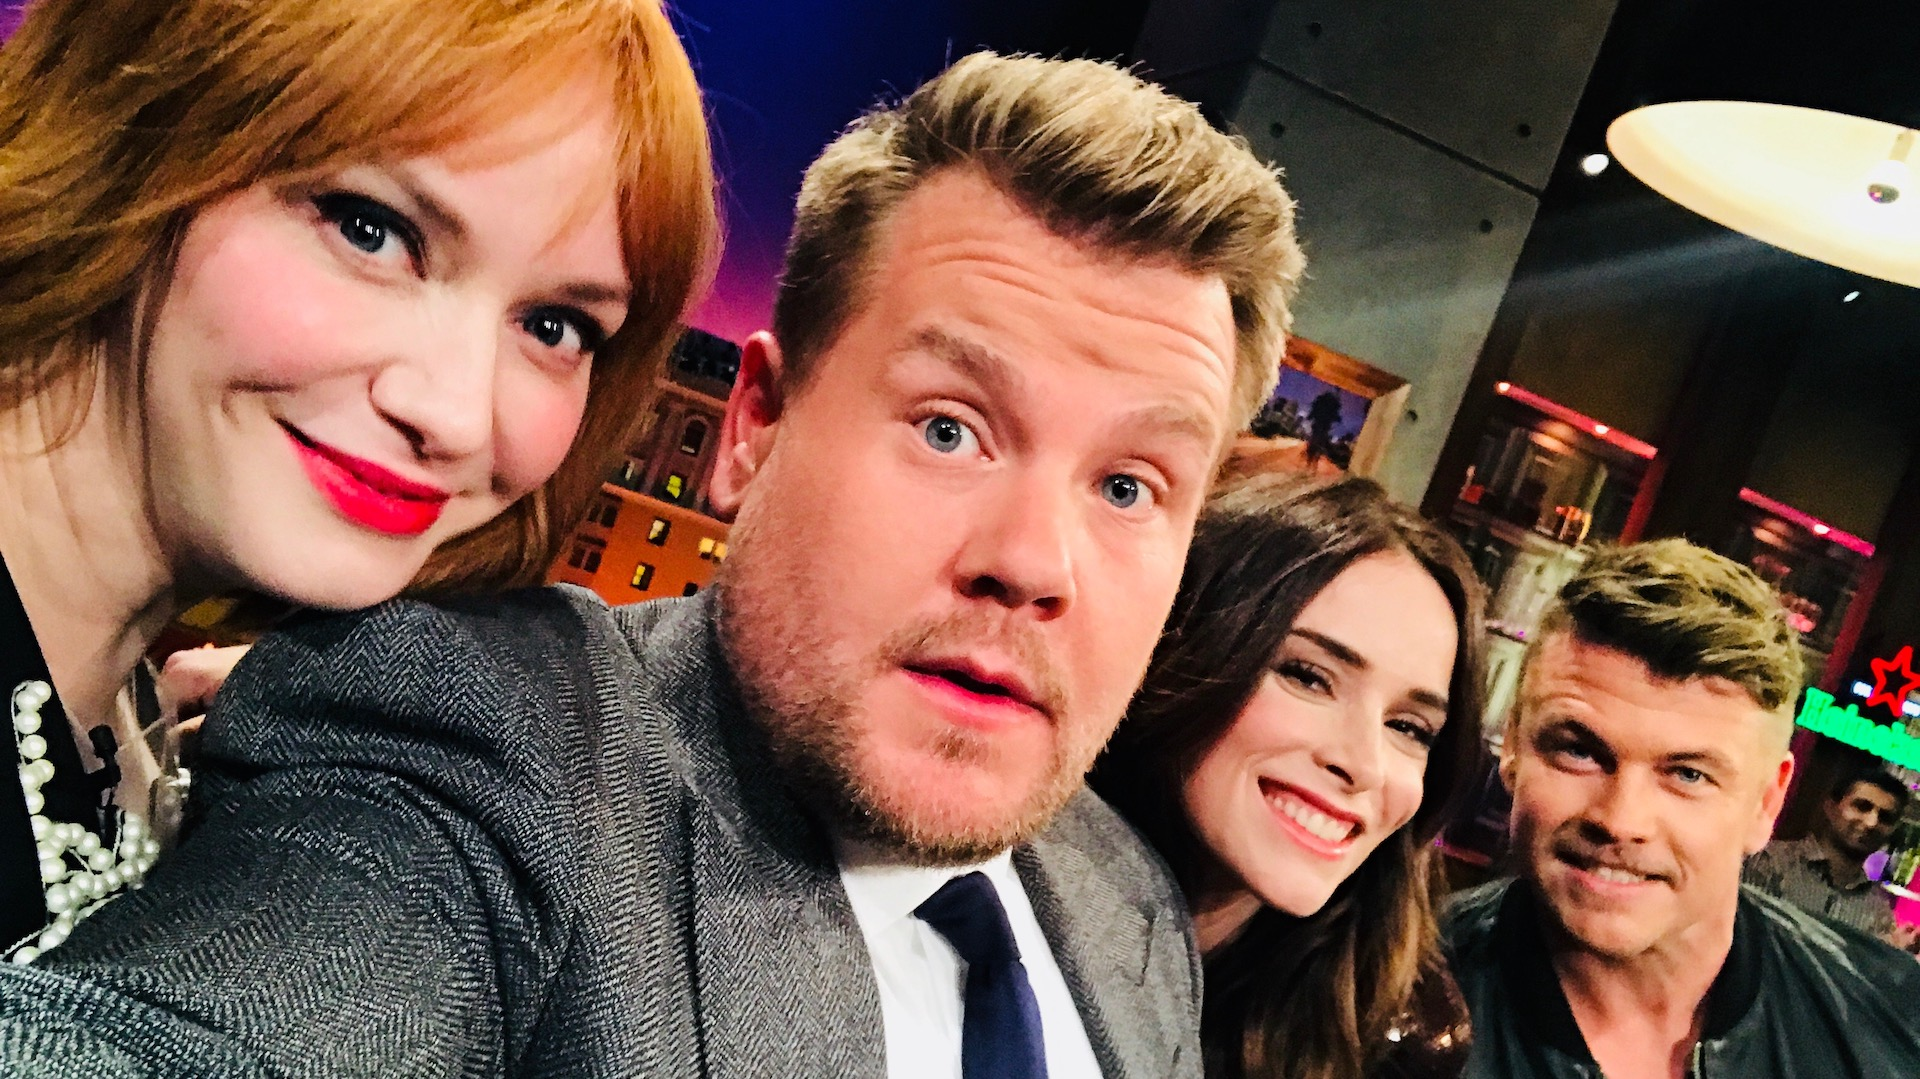 Christina Hendricks, Abigail Spencer, & Luke Hemsworth